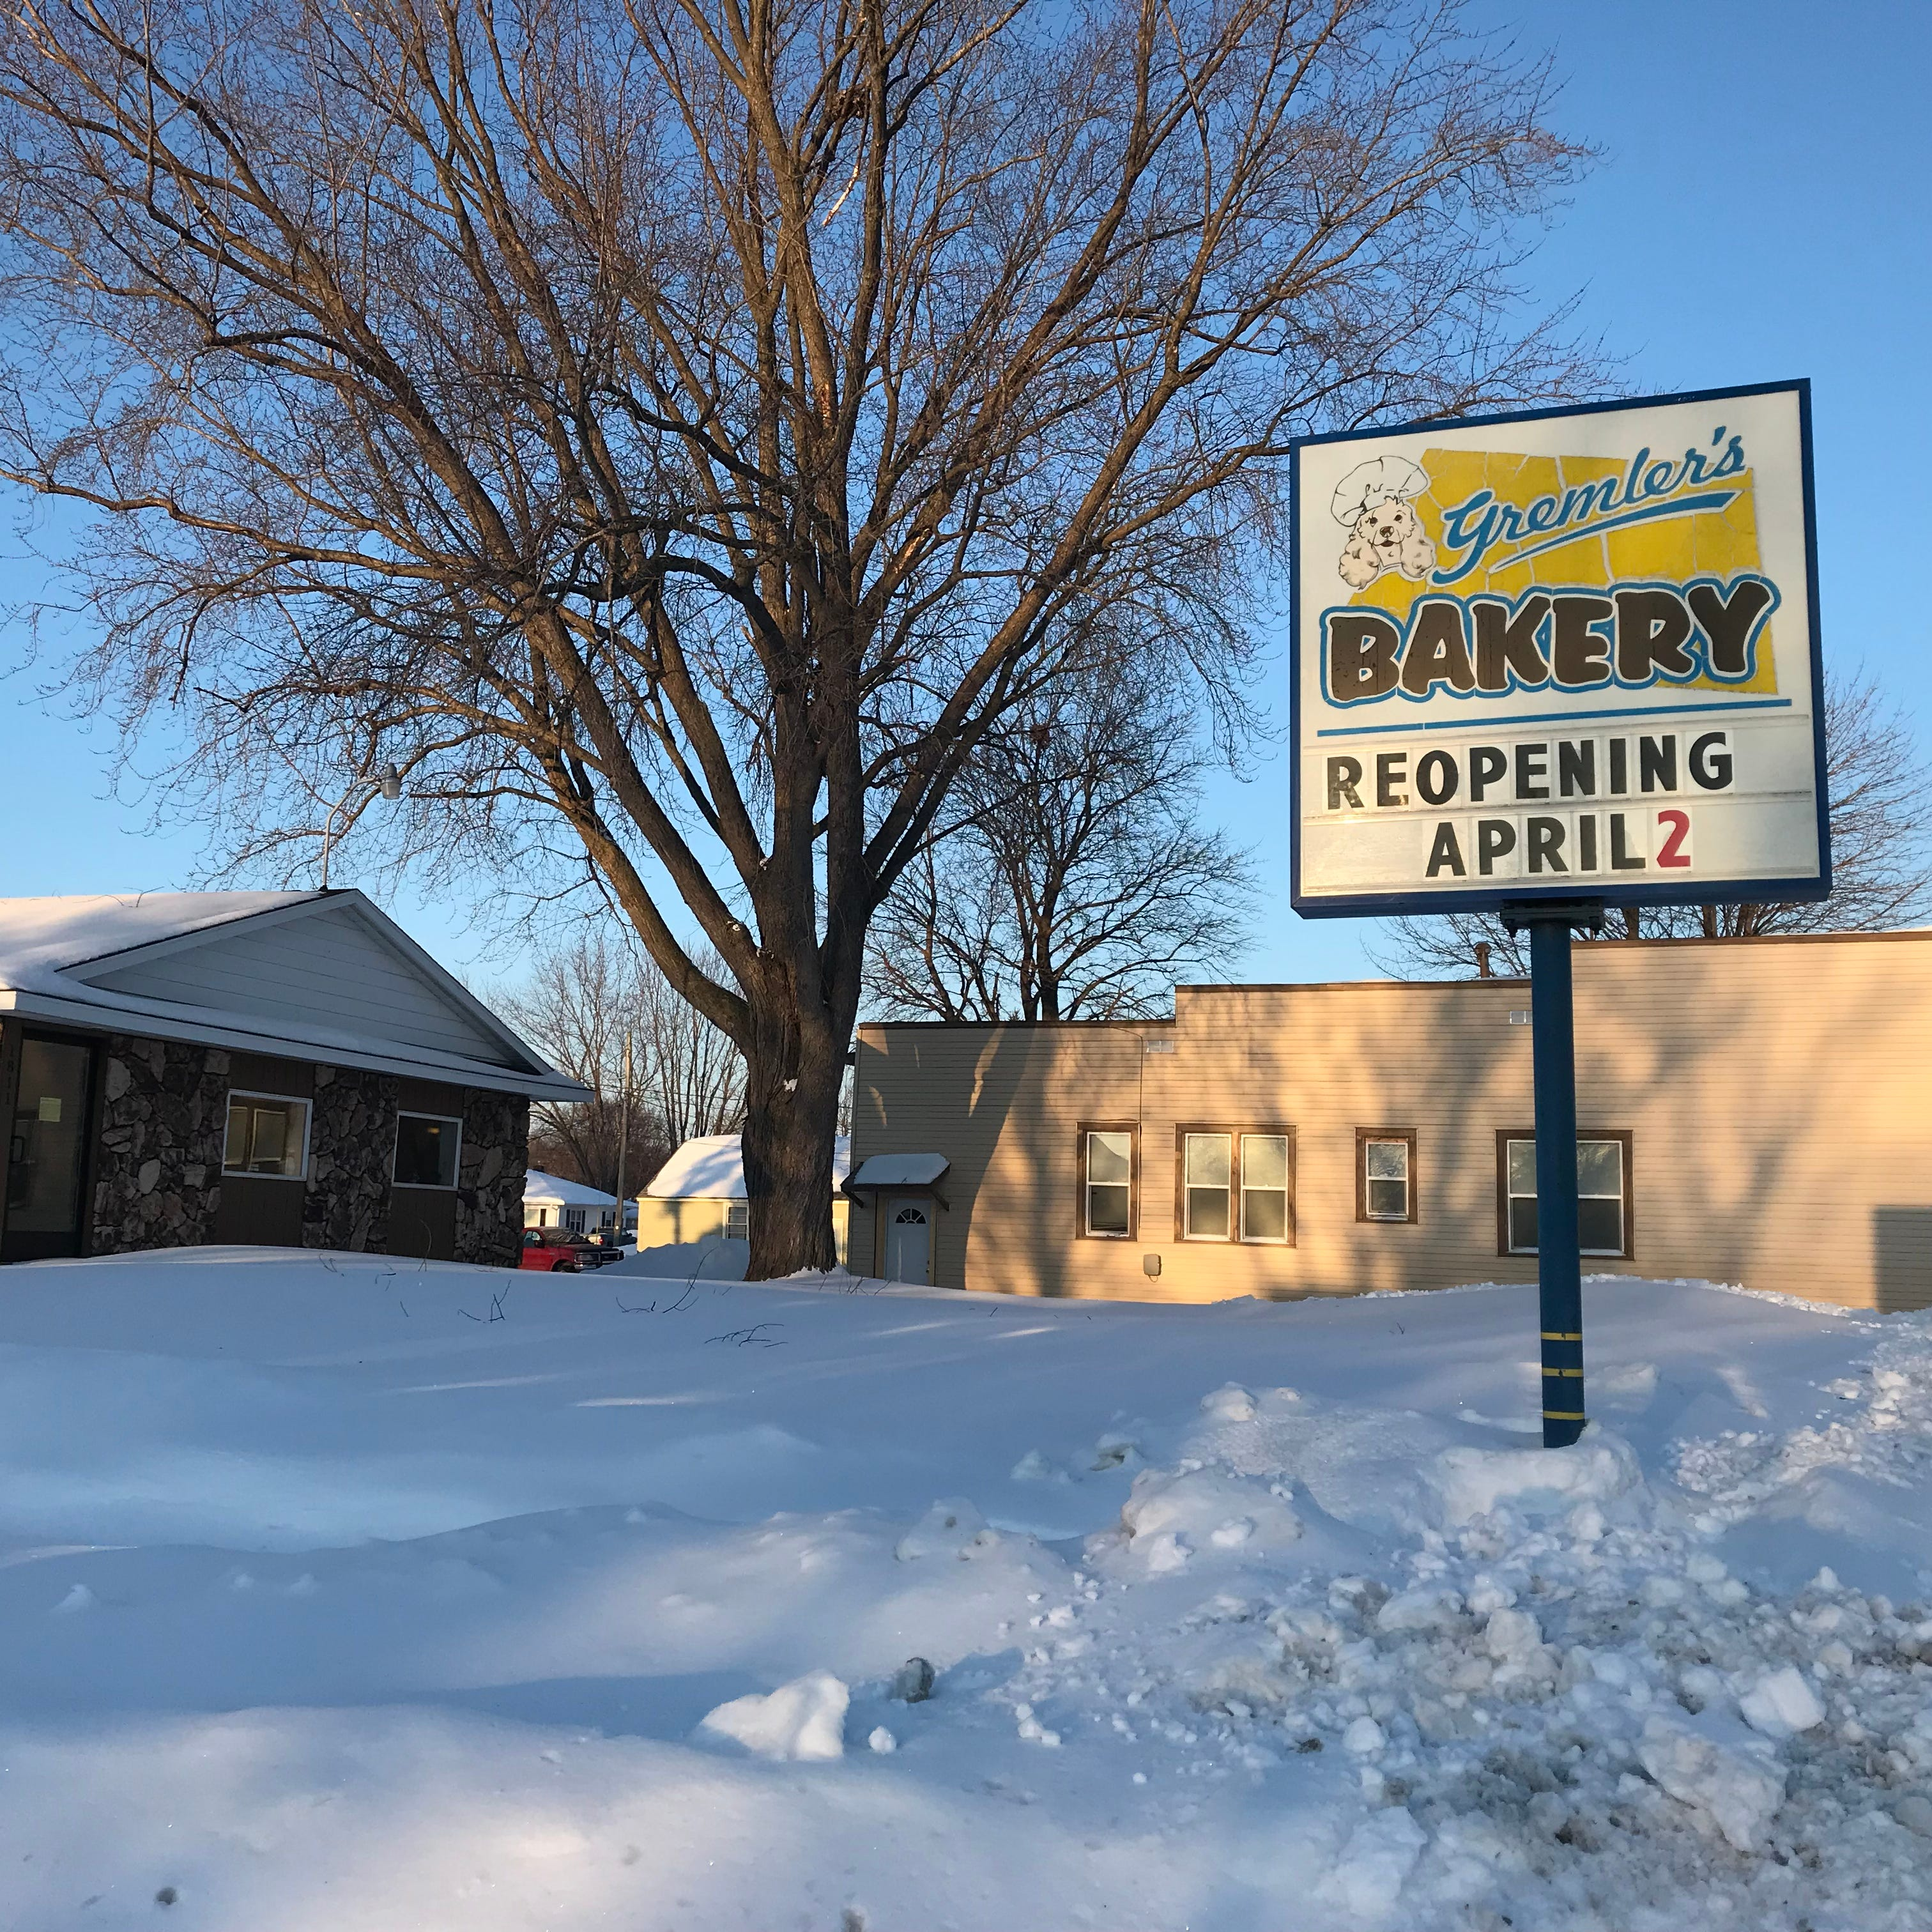 Gremler's Bakery to reopen for the season April 2 in Wisconsin Rapids